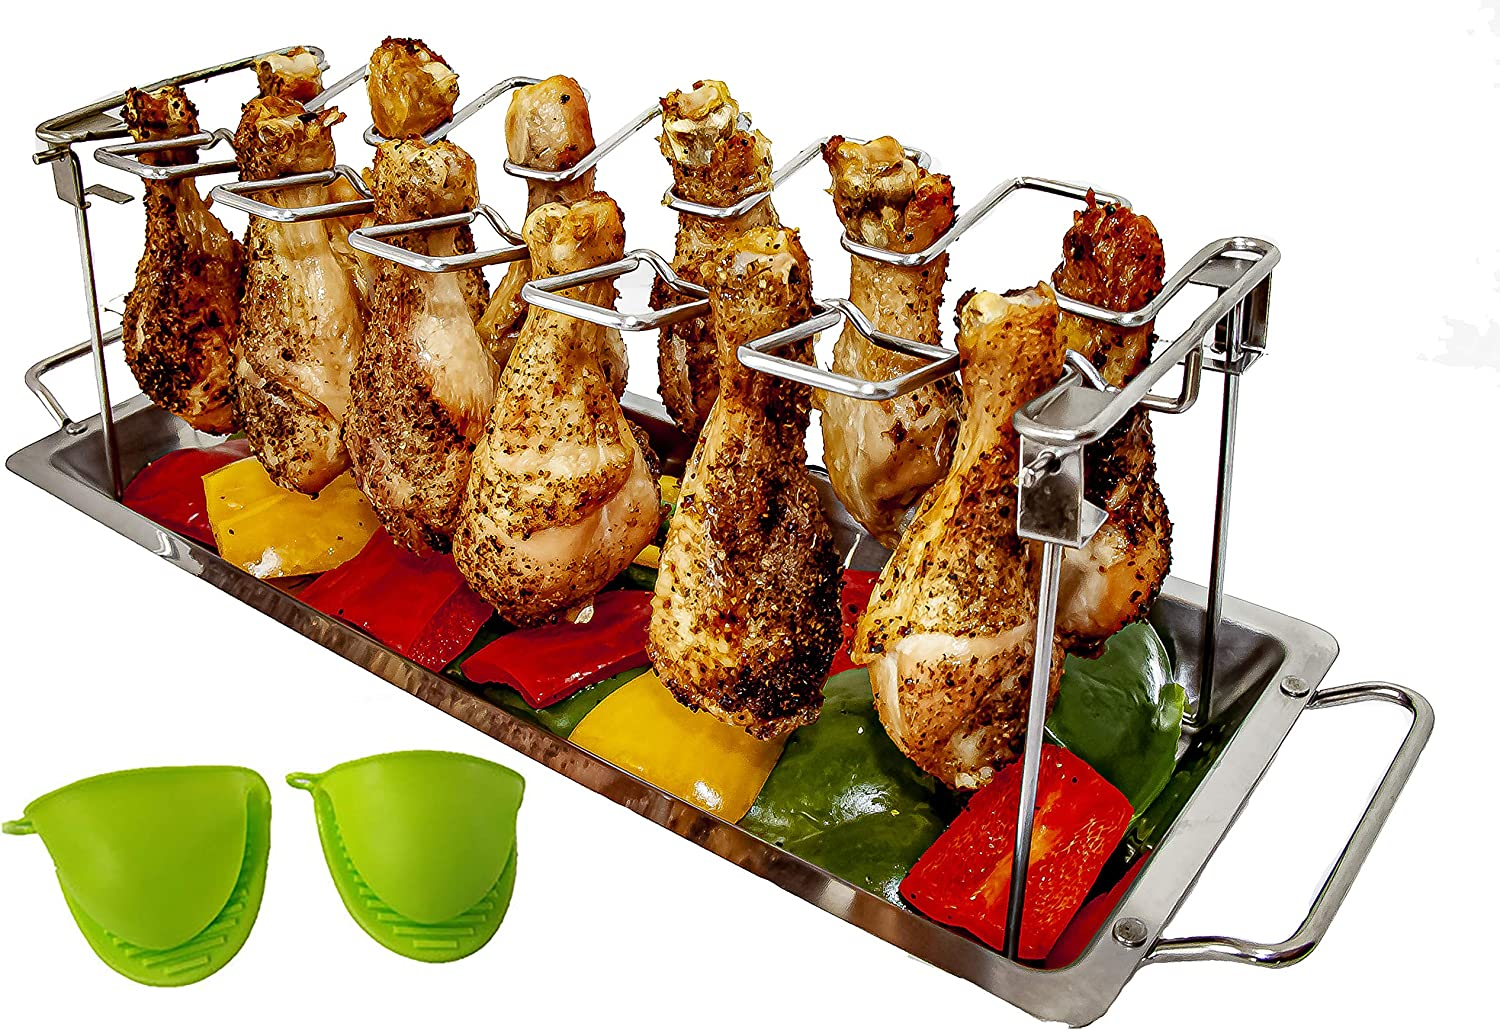 MamAnya's Useful Things Chicken Leg Wing Rack – 12 Slots Stainless Steel Roaster for Grill, Smoker or Oven. Comes with Silicone Mitts and Drip Pan for Vegetables. Non-Toxic BBQ Holder, Dishwasher Safe